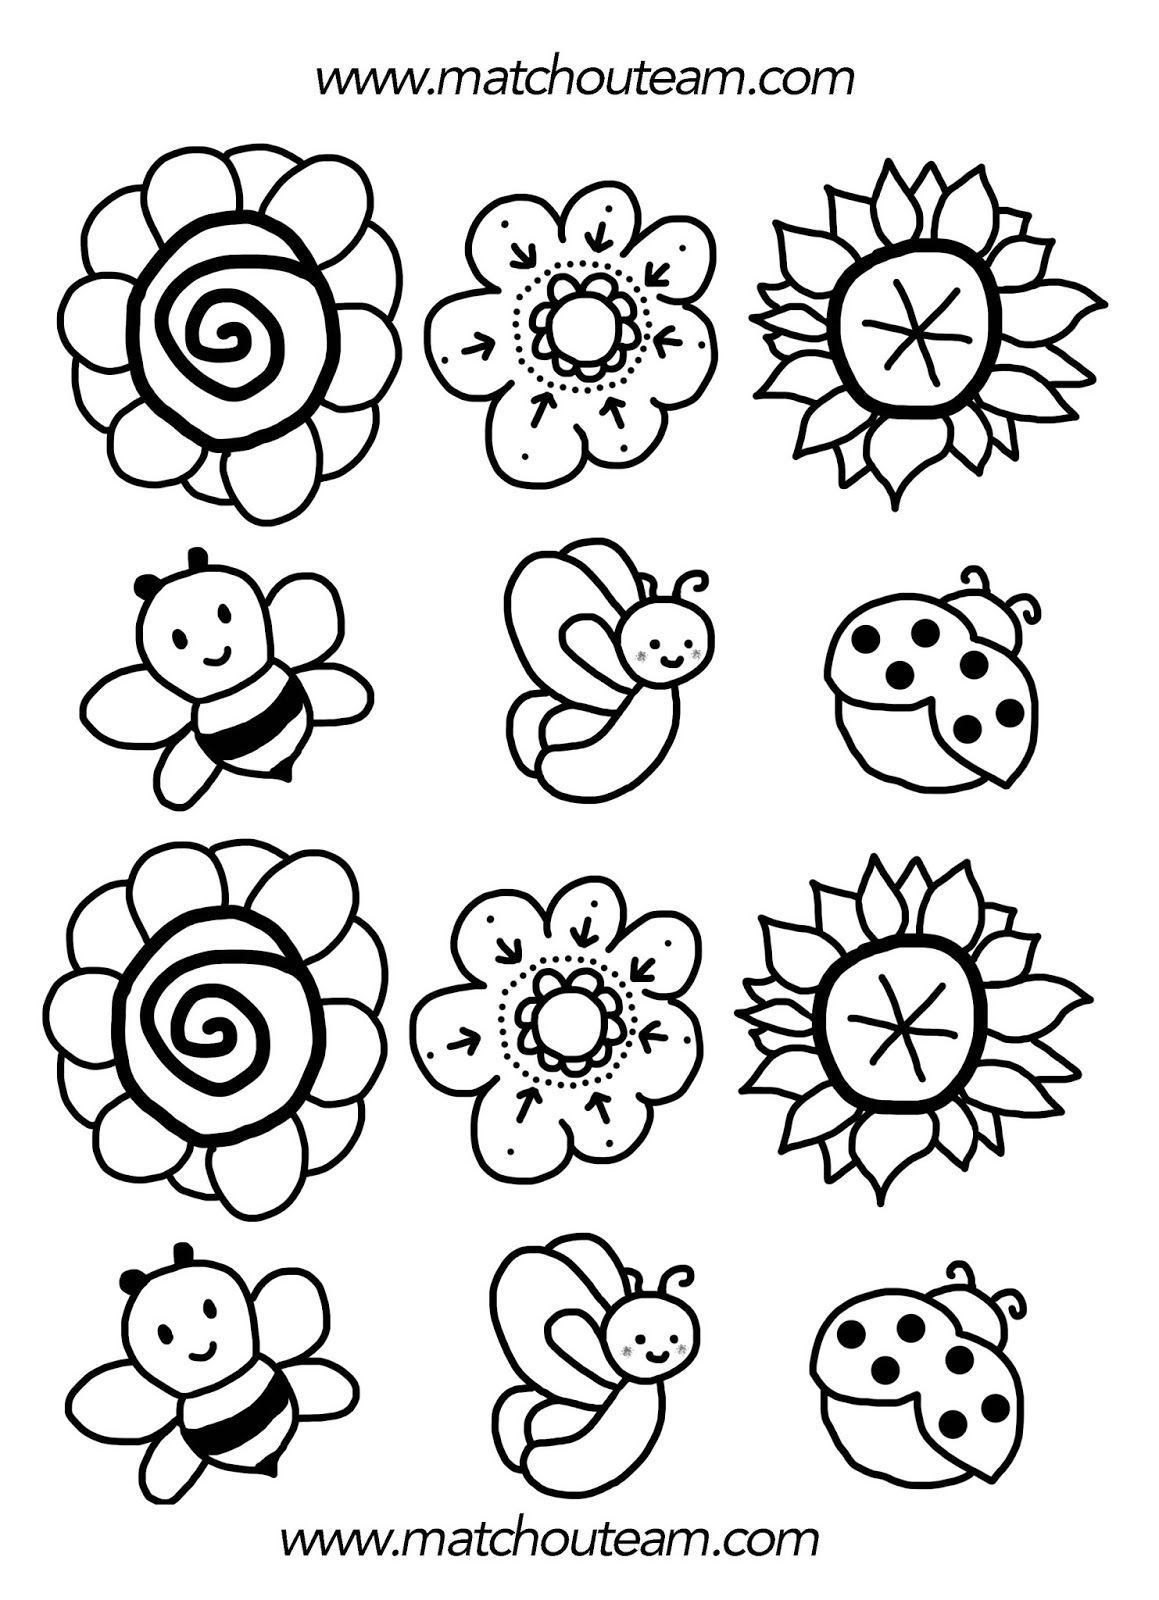 Bouquet de printemps coloring pages coloring pages mindfulness colouring kindergarten art - Dessin de printemps a imprimer ...